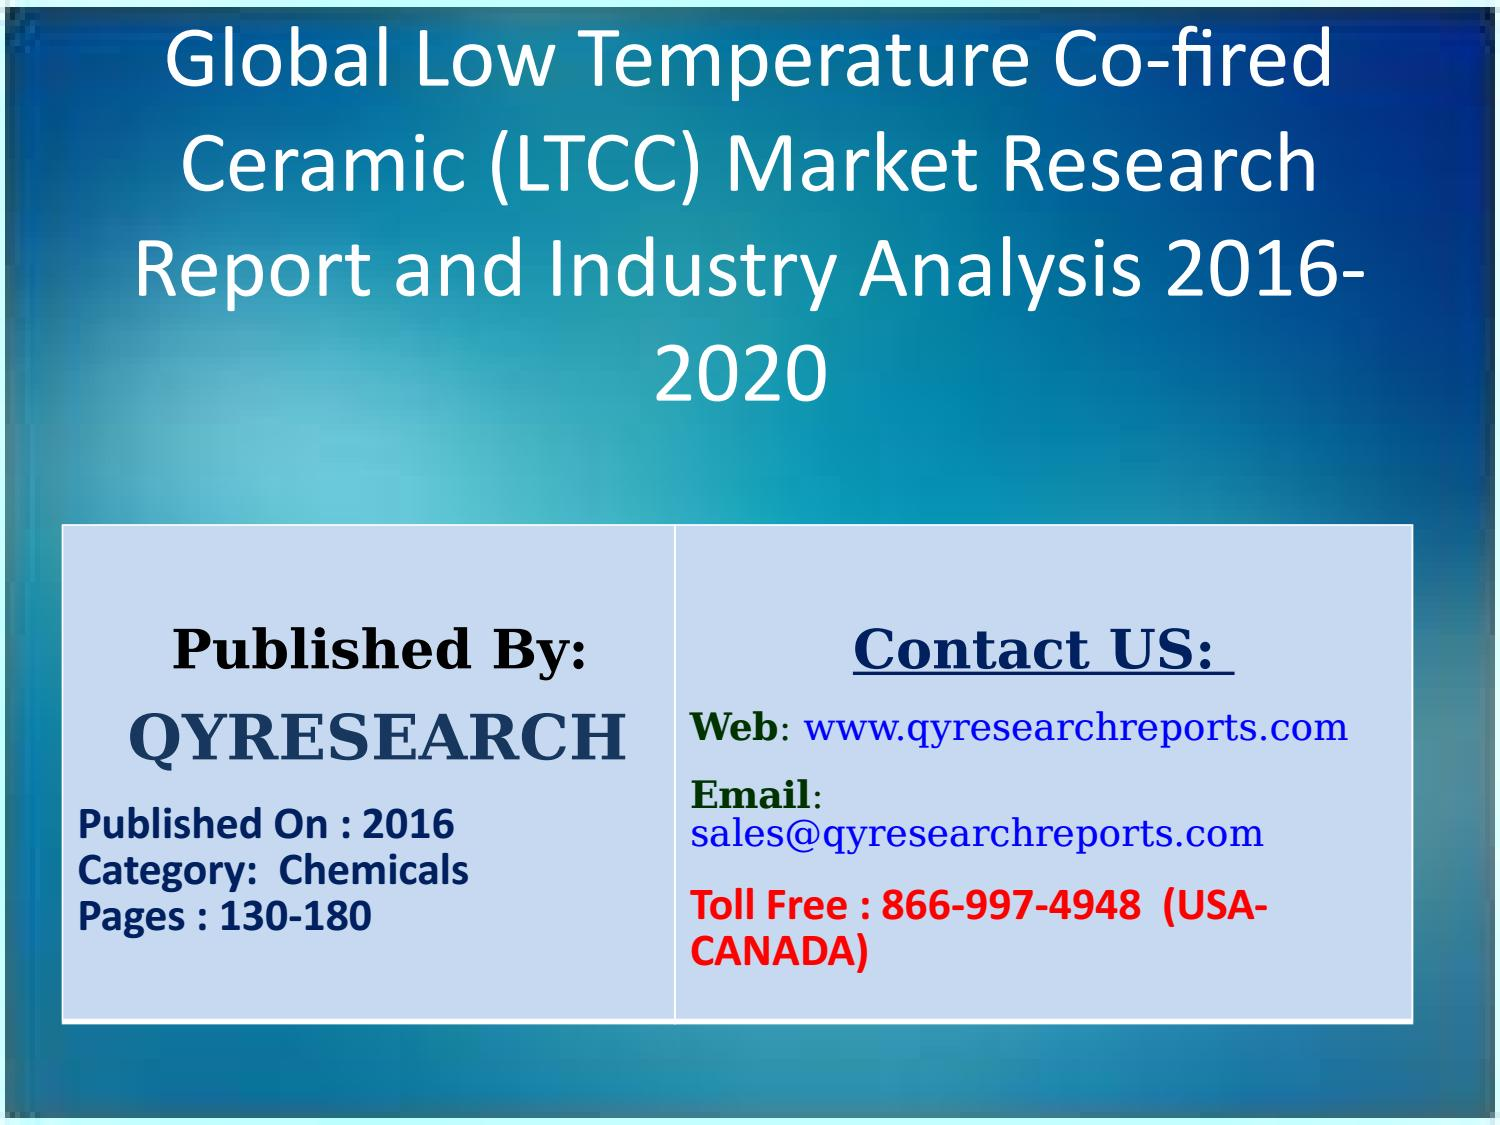 transcriptomics technologies market The report on global transcriptomics technologies market provides qualitative and quantitative analysis for the period of 2015 to.